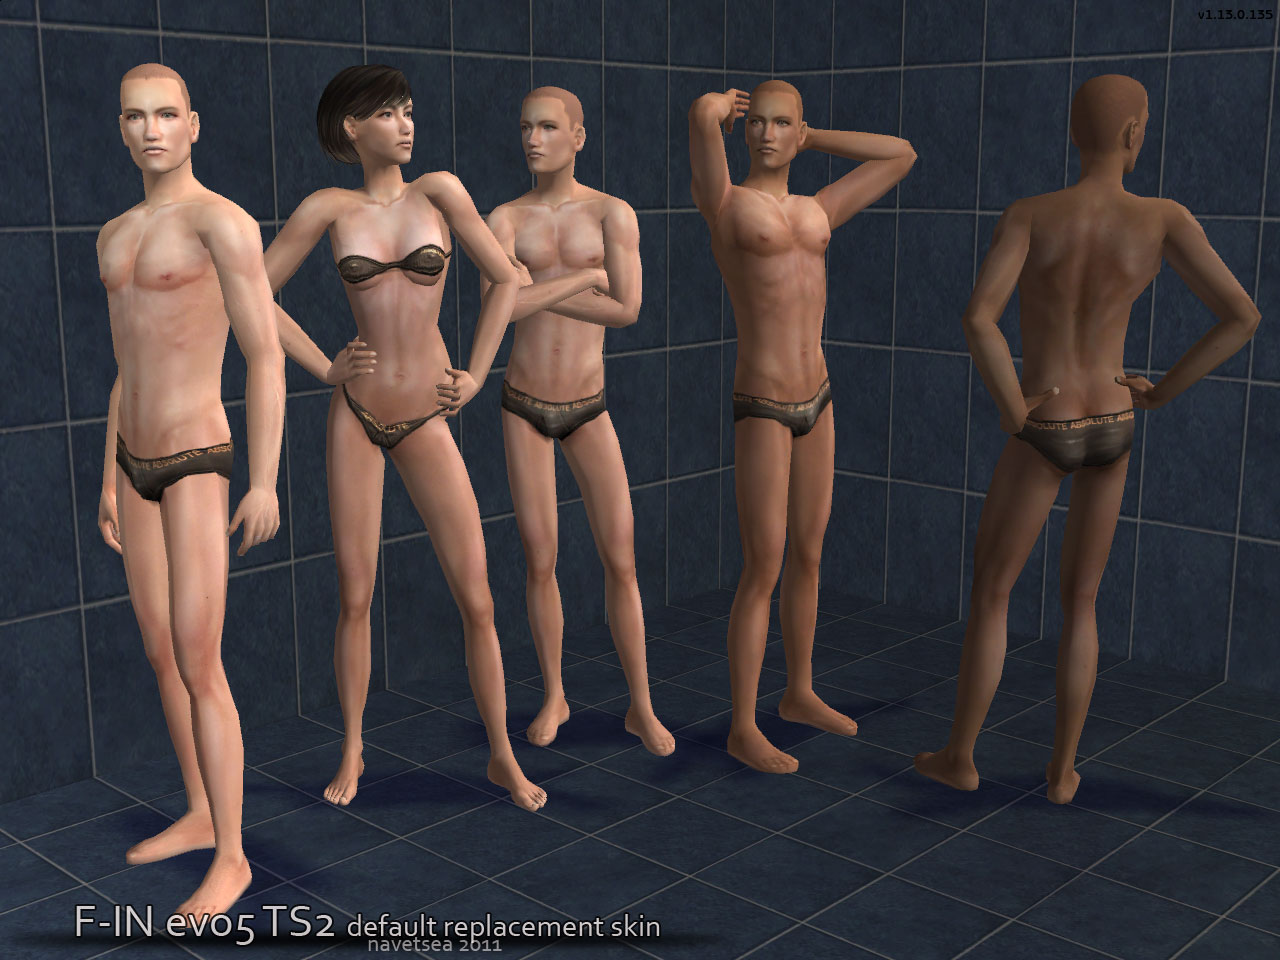 Sims 2 nude skin downloads nsfw film